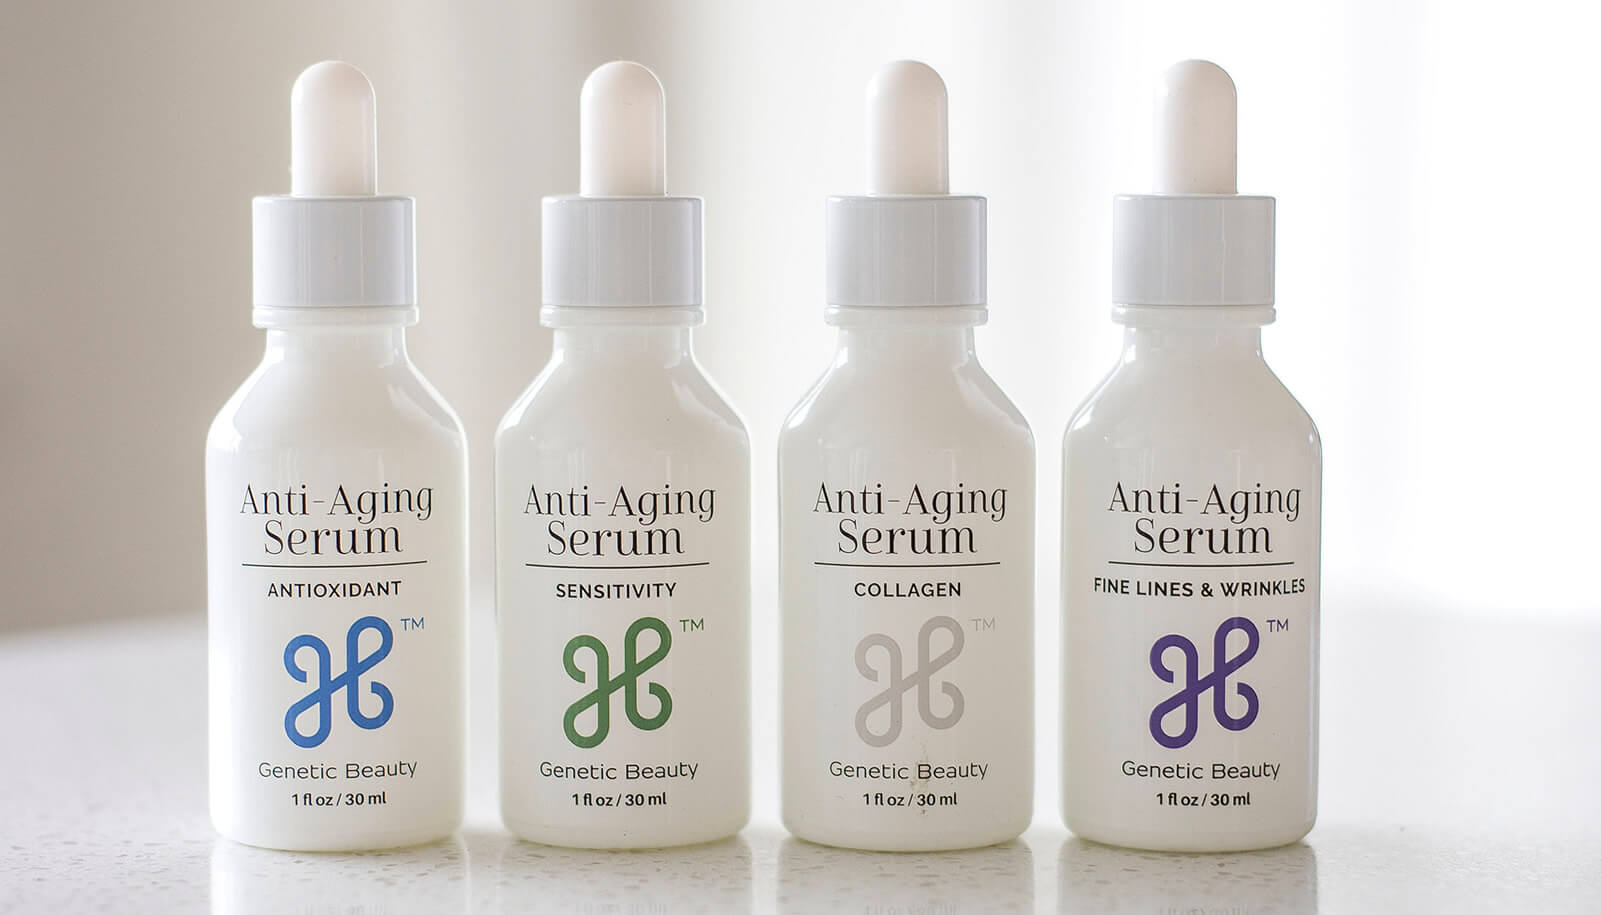 Genetic Beauty review of anti-aging skincare serums displayed on a shelf